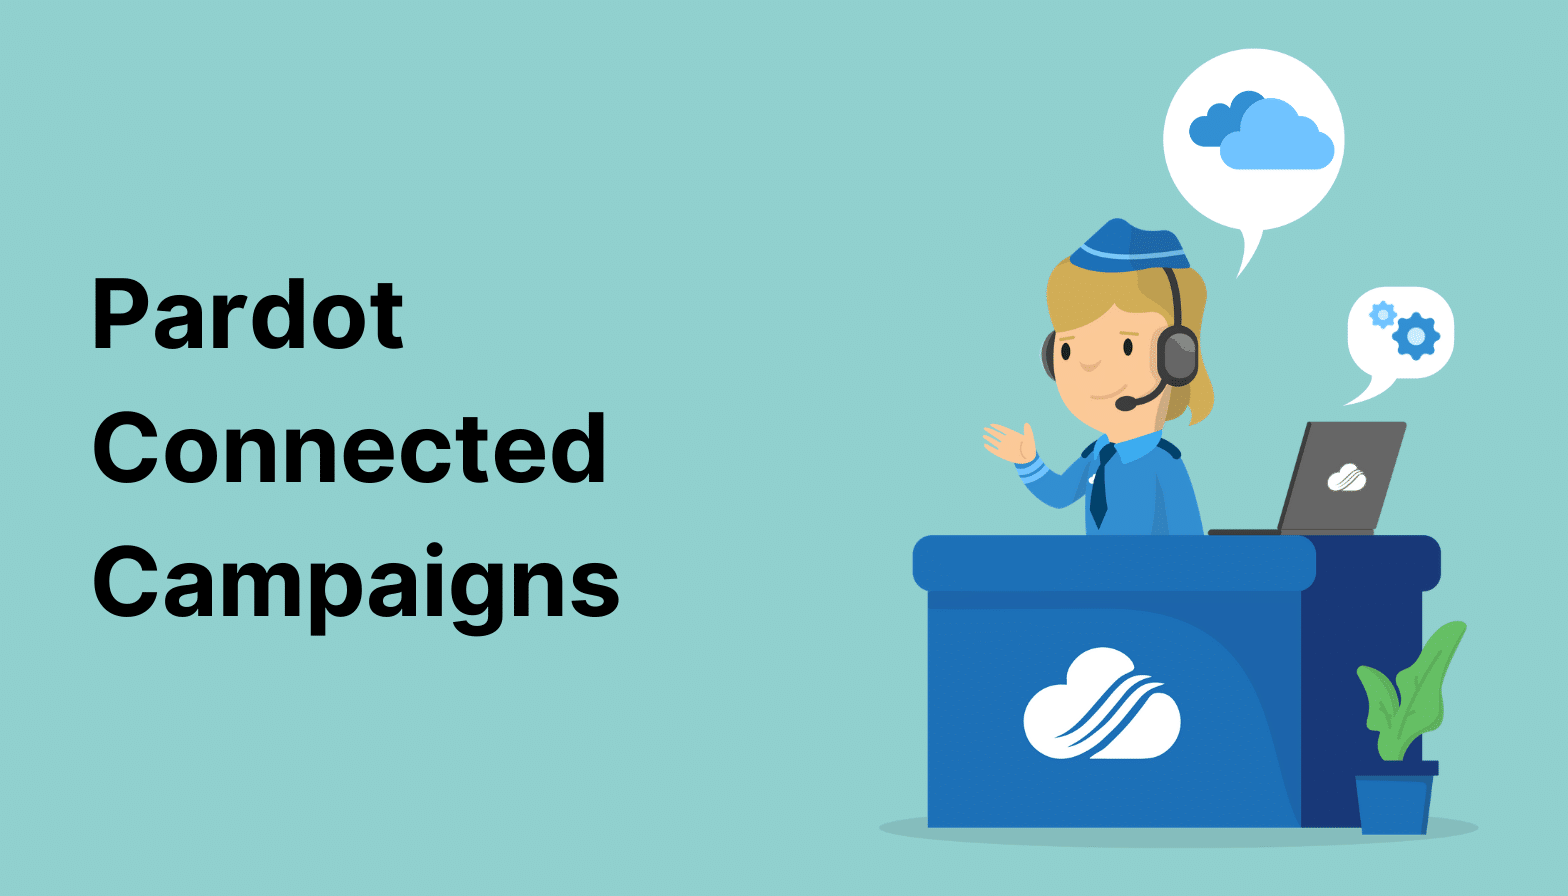 Pardot Connected Campaigns